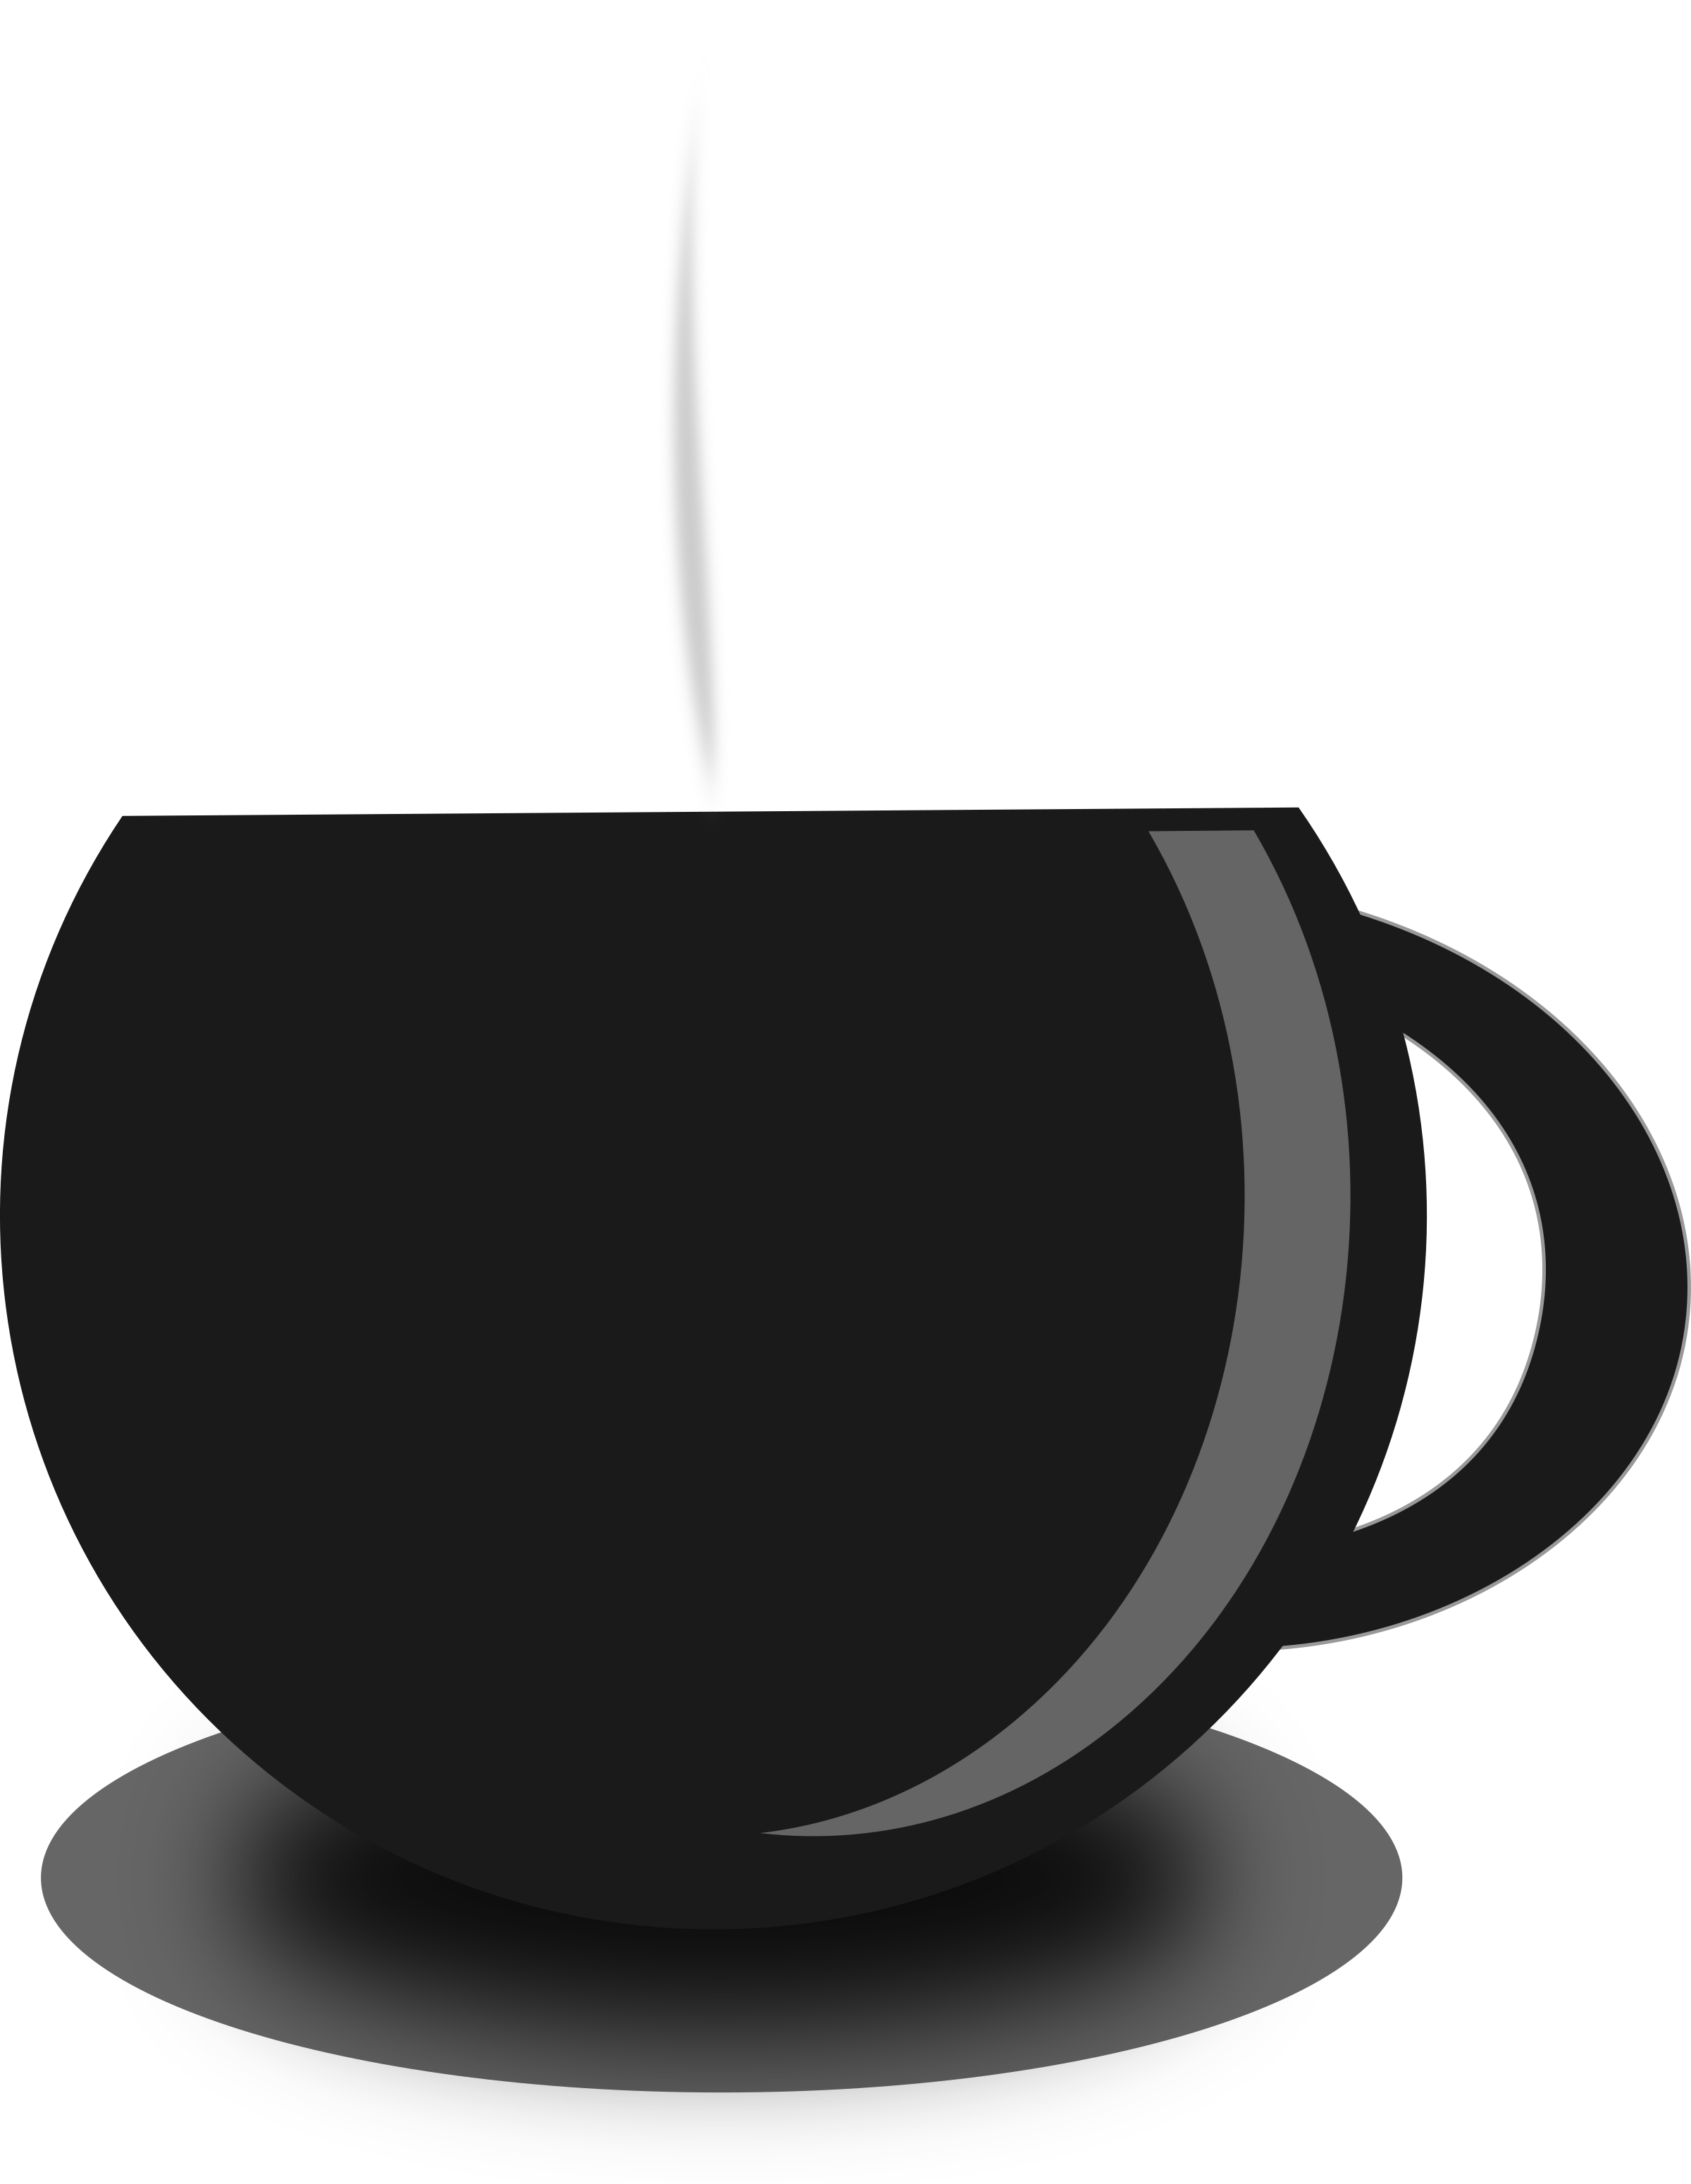 Tea clipart social. Cup silhouette at getdrawings